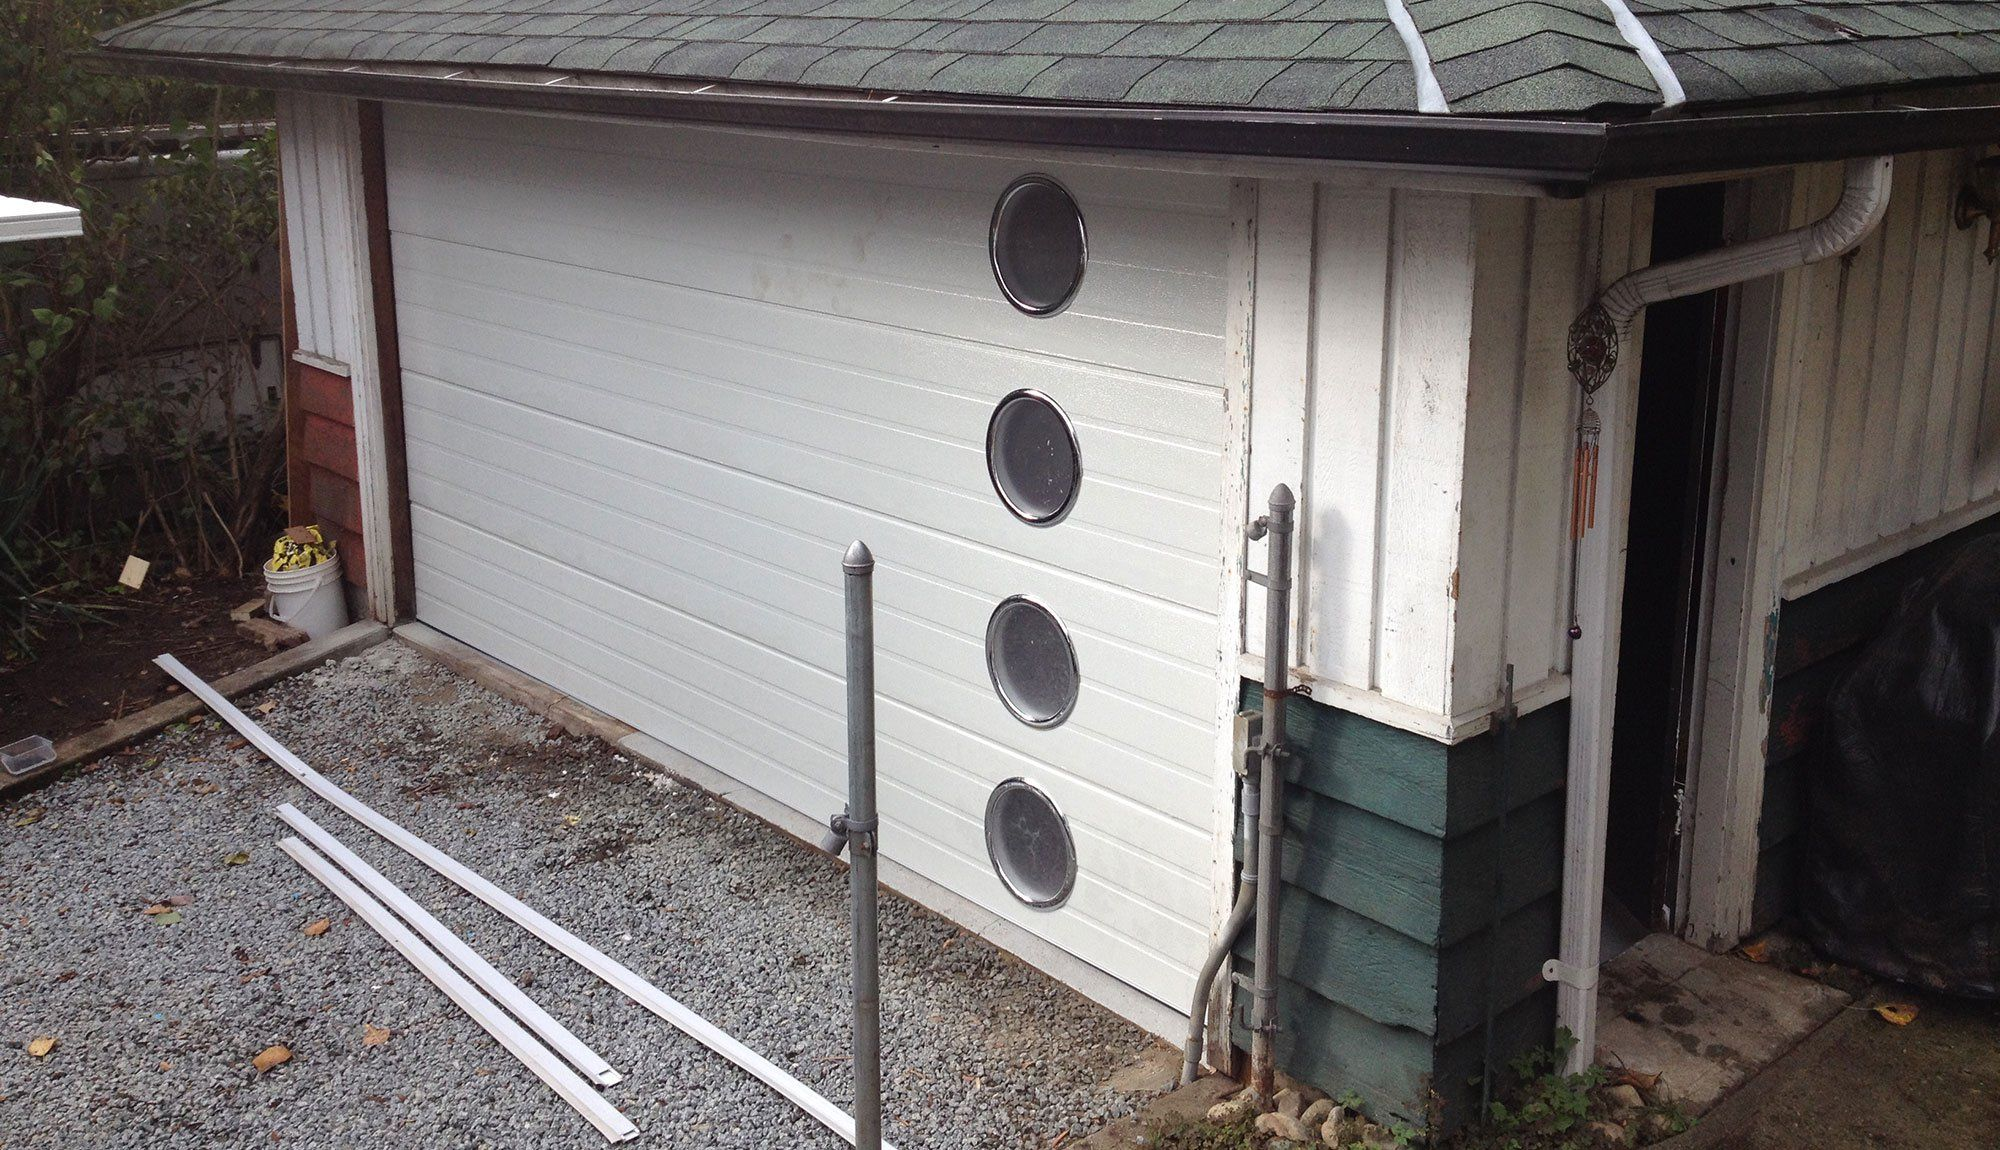 This Retro Garage Door Was Just Installed in Our 1940 S Bungalow